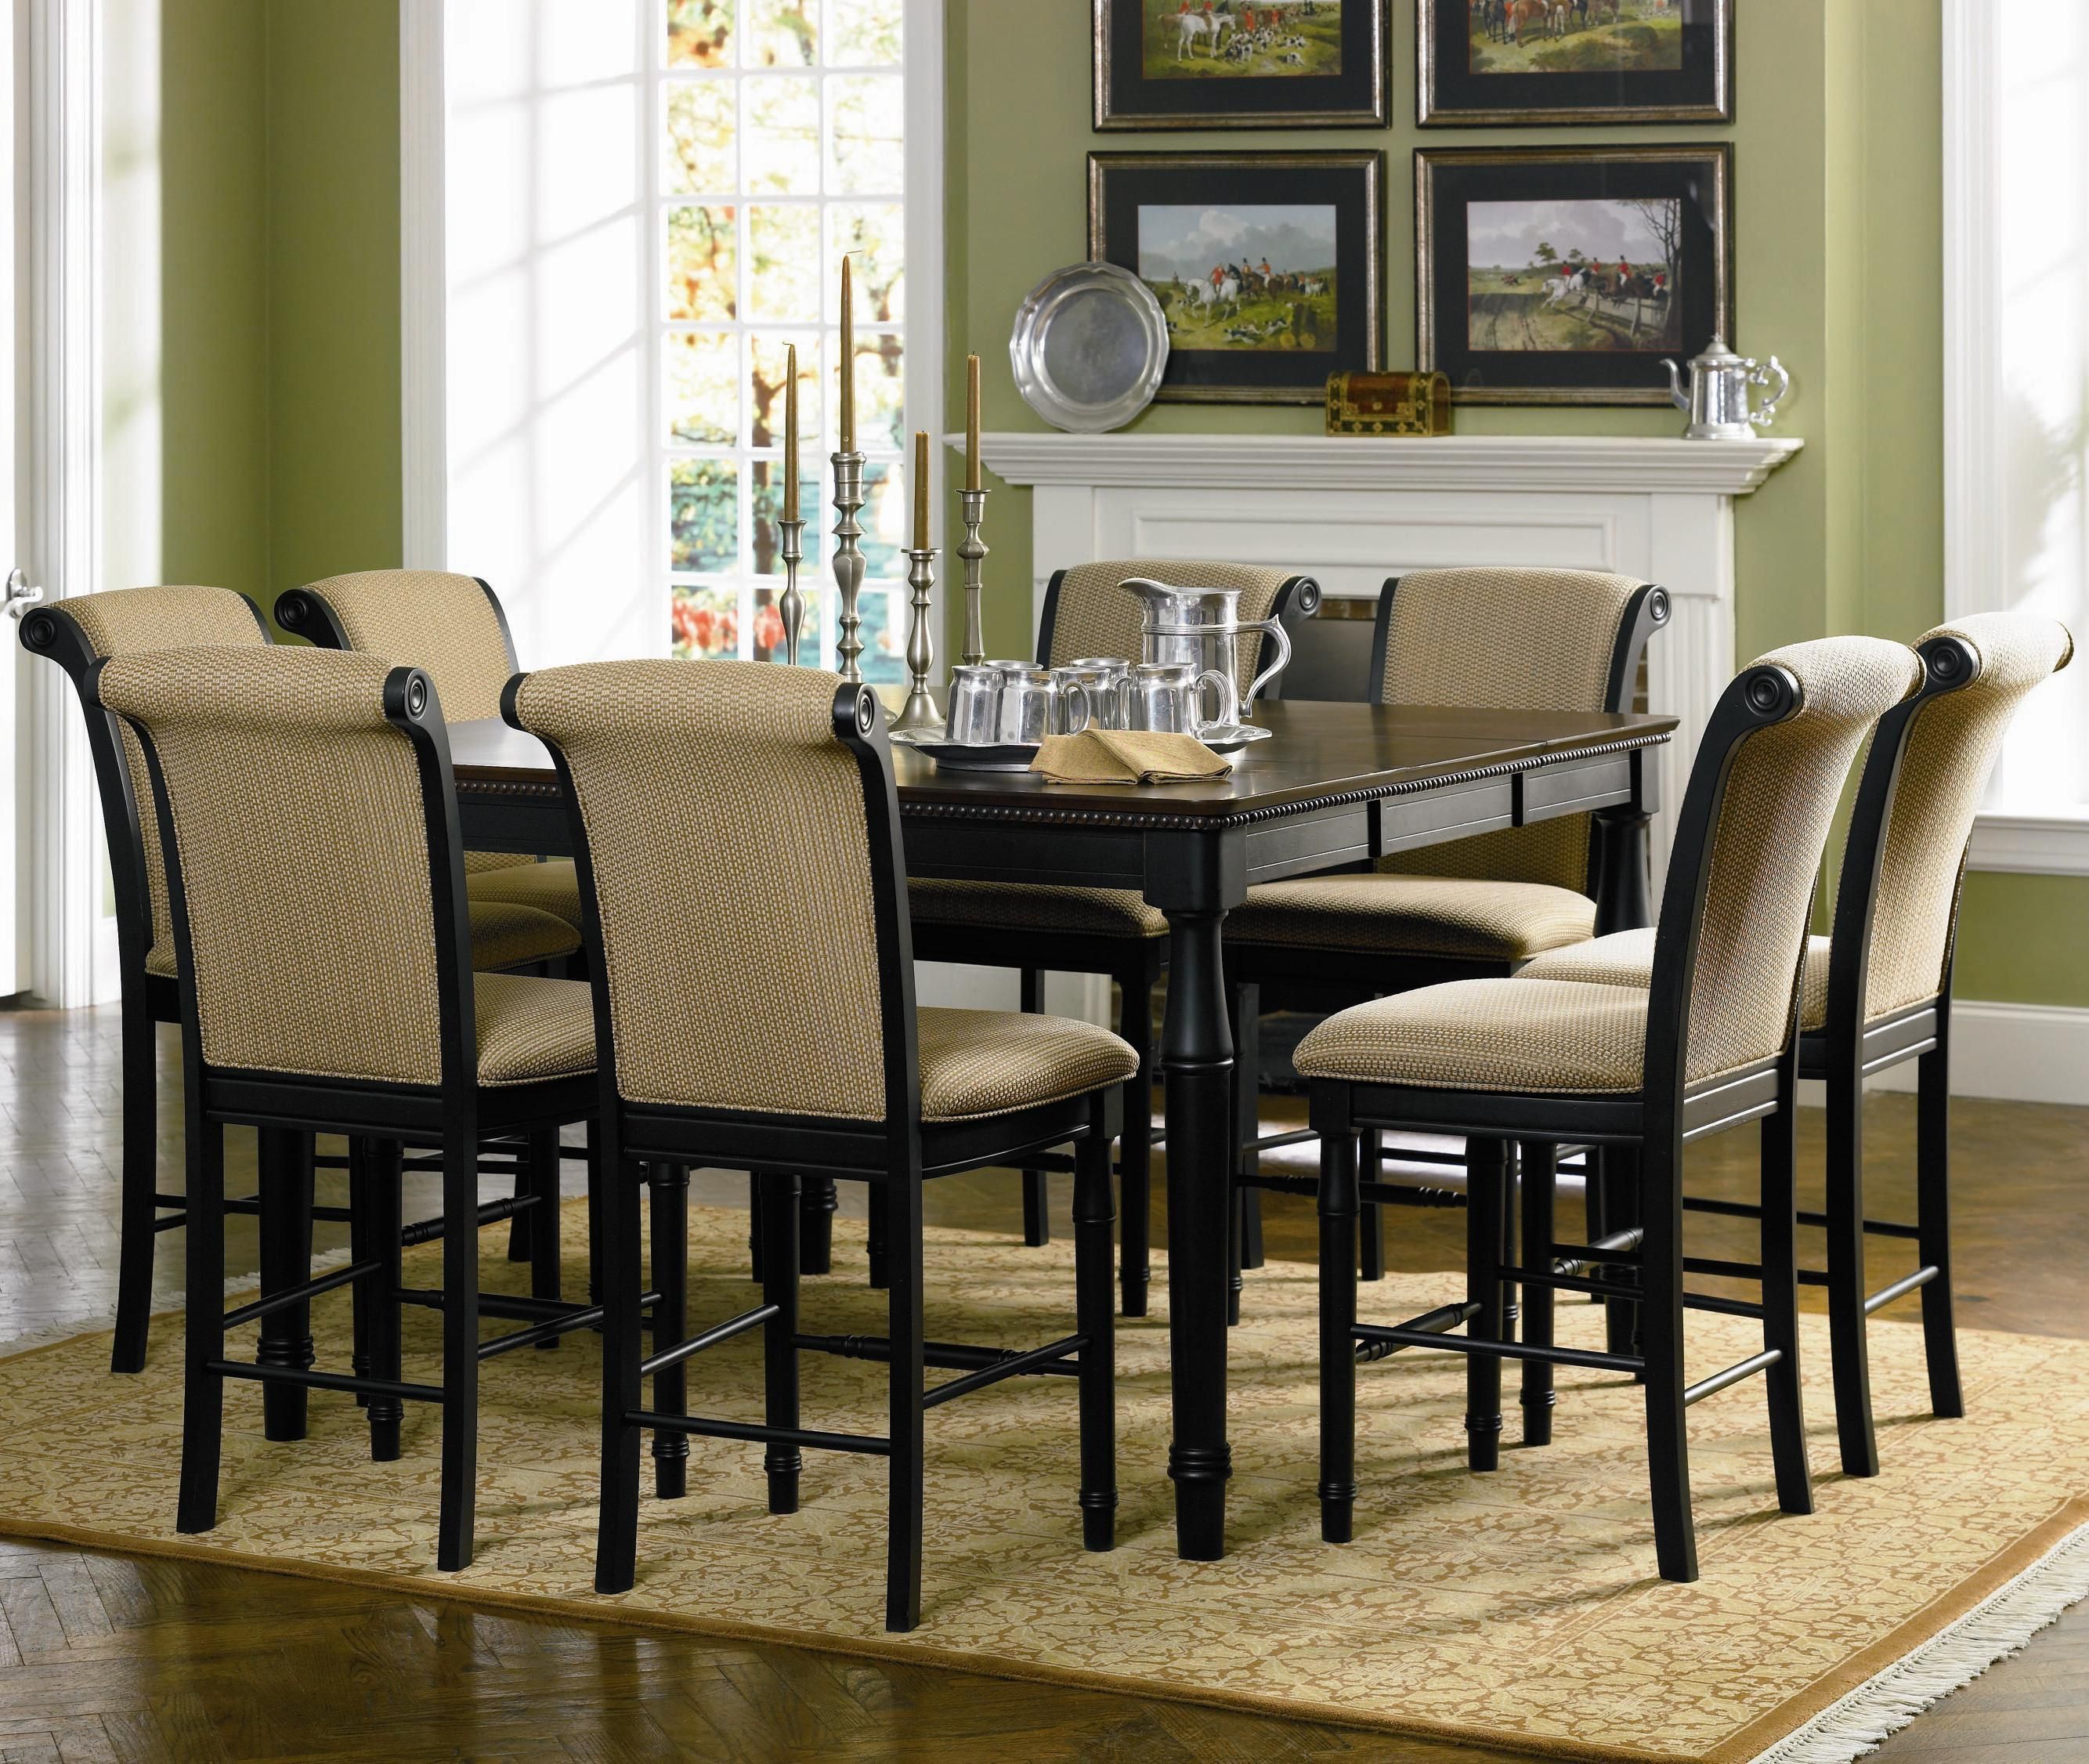 Cabrillo 9 Piece Counter Height Dining Set By Coaster